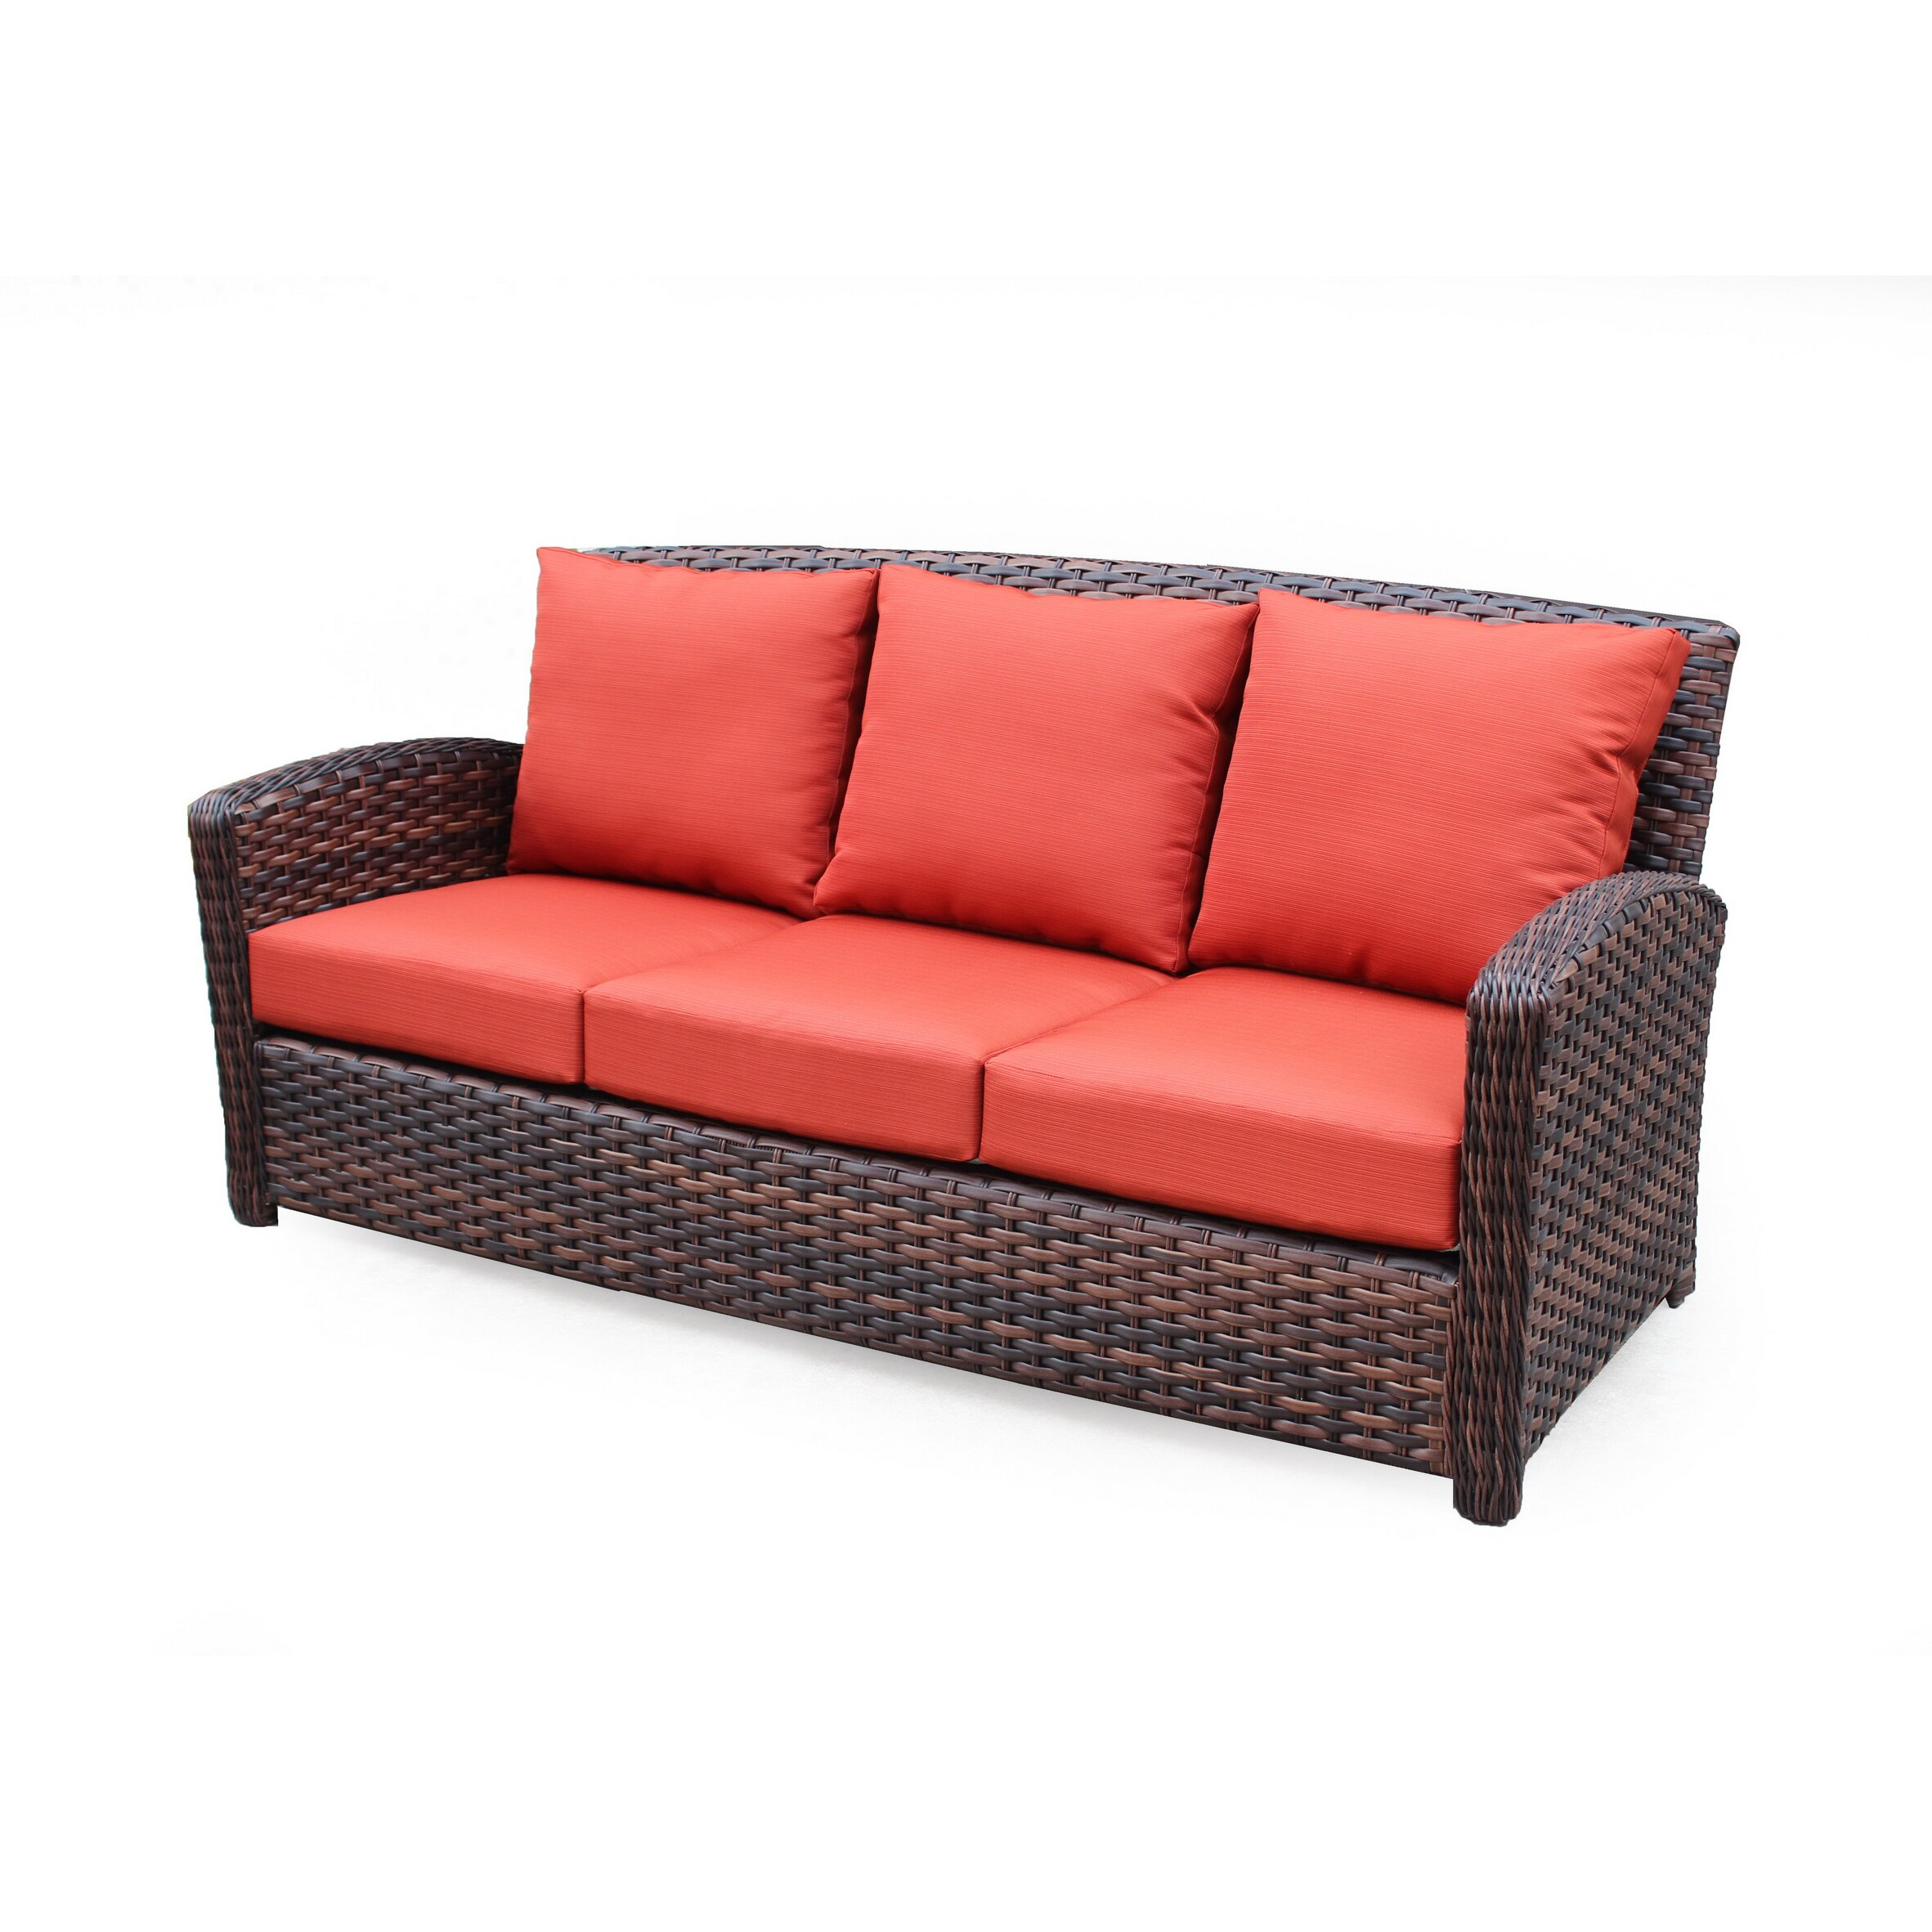 rattan sofa cushions outdoor wicker furniture cushions. Black Bedroom Furniture Sets. Home Design Ideas